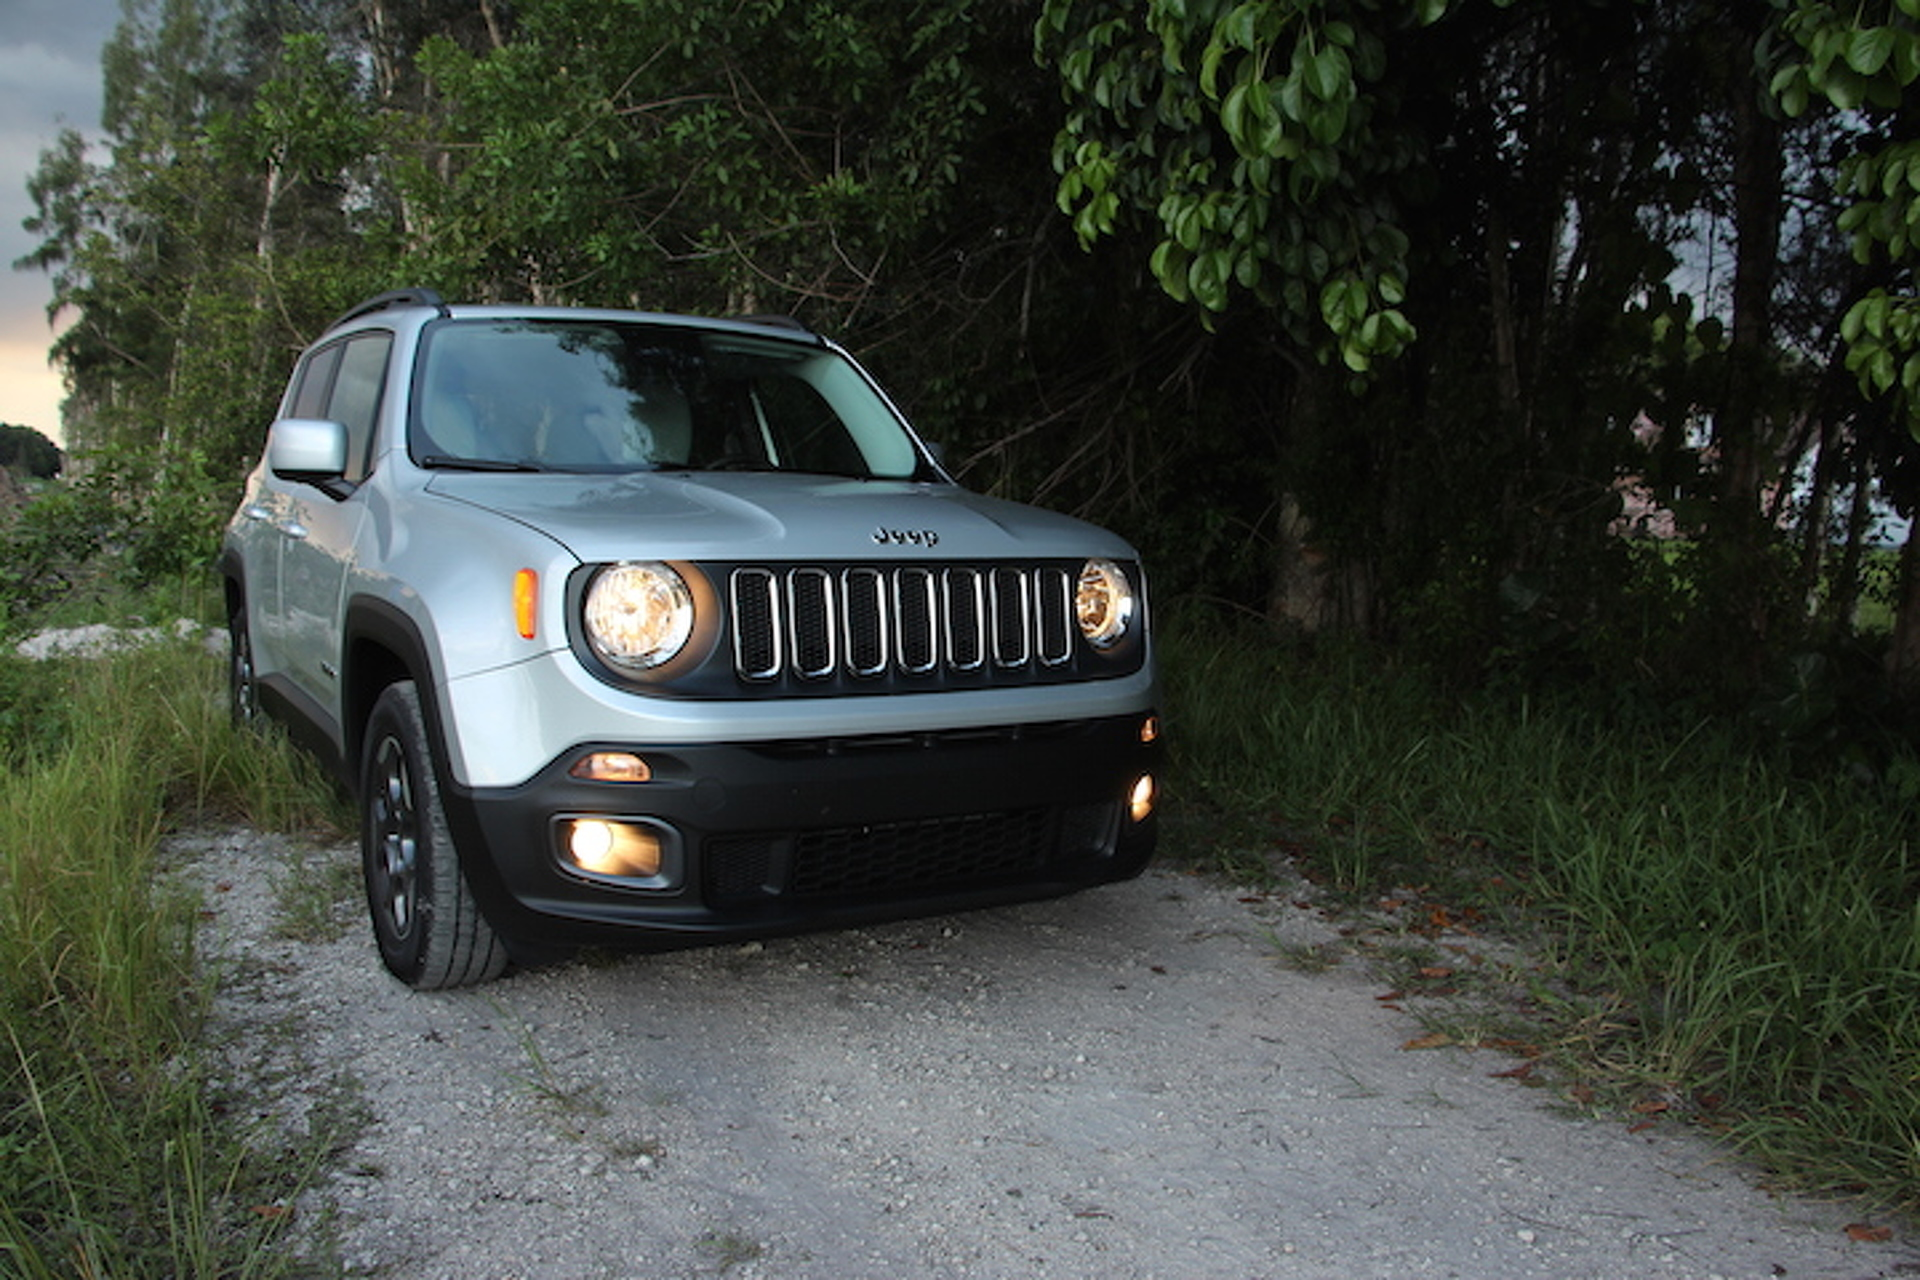 The Jeep Renegade Latitude Isn't Perfect, But It's Lovable: Review